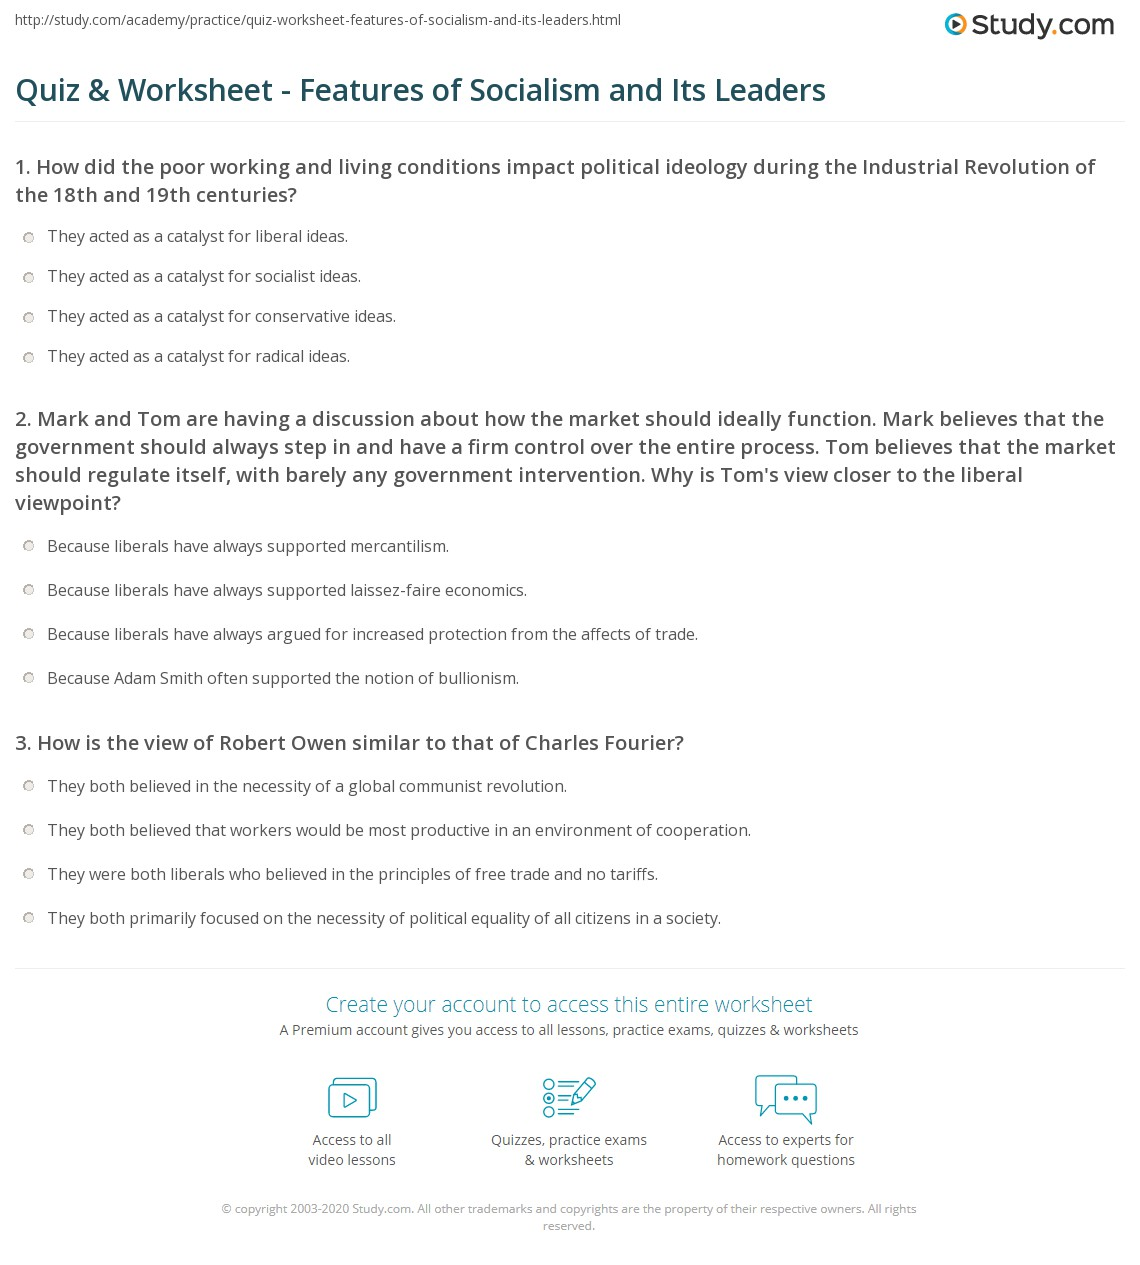 quiz & worksheet - features of socialism and its leaders | study